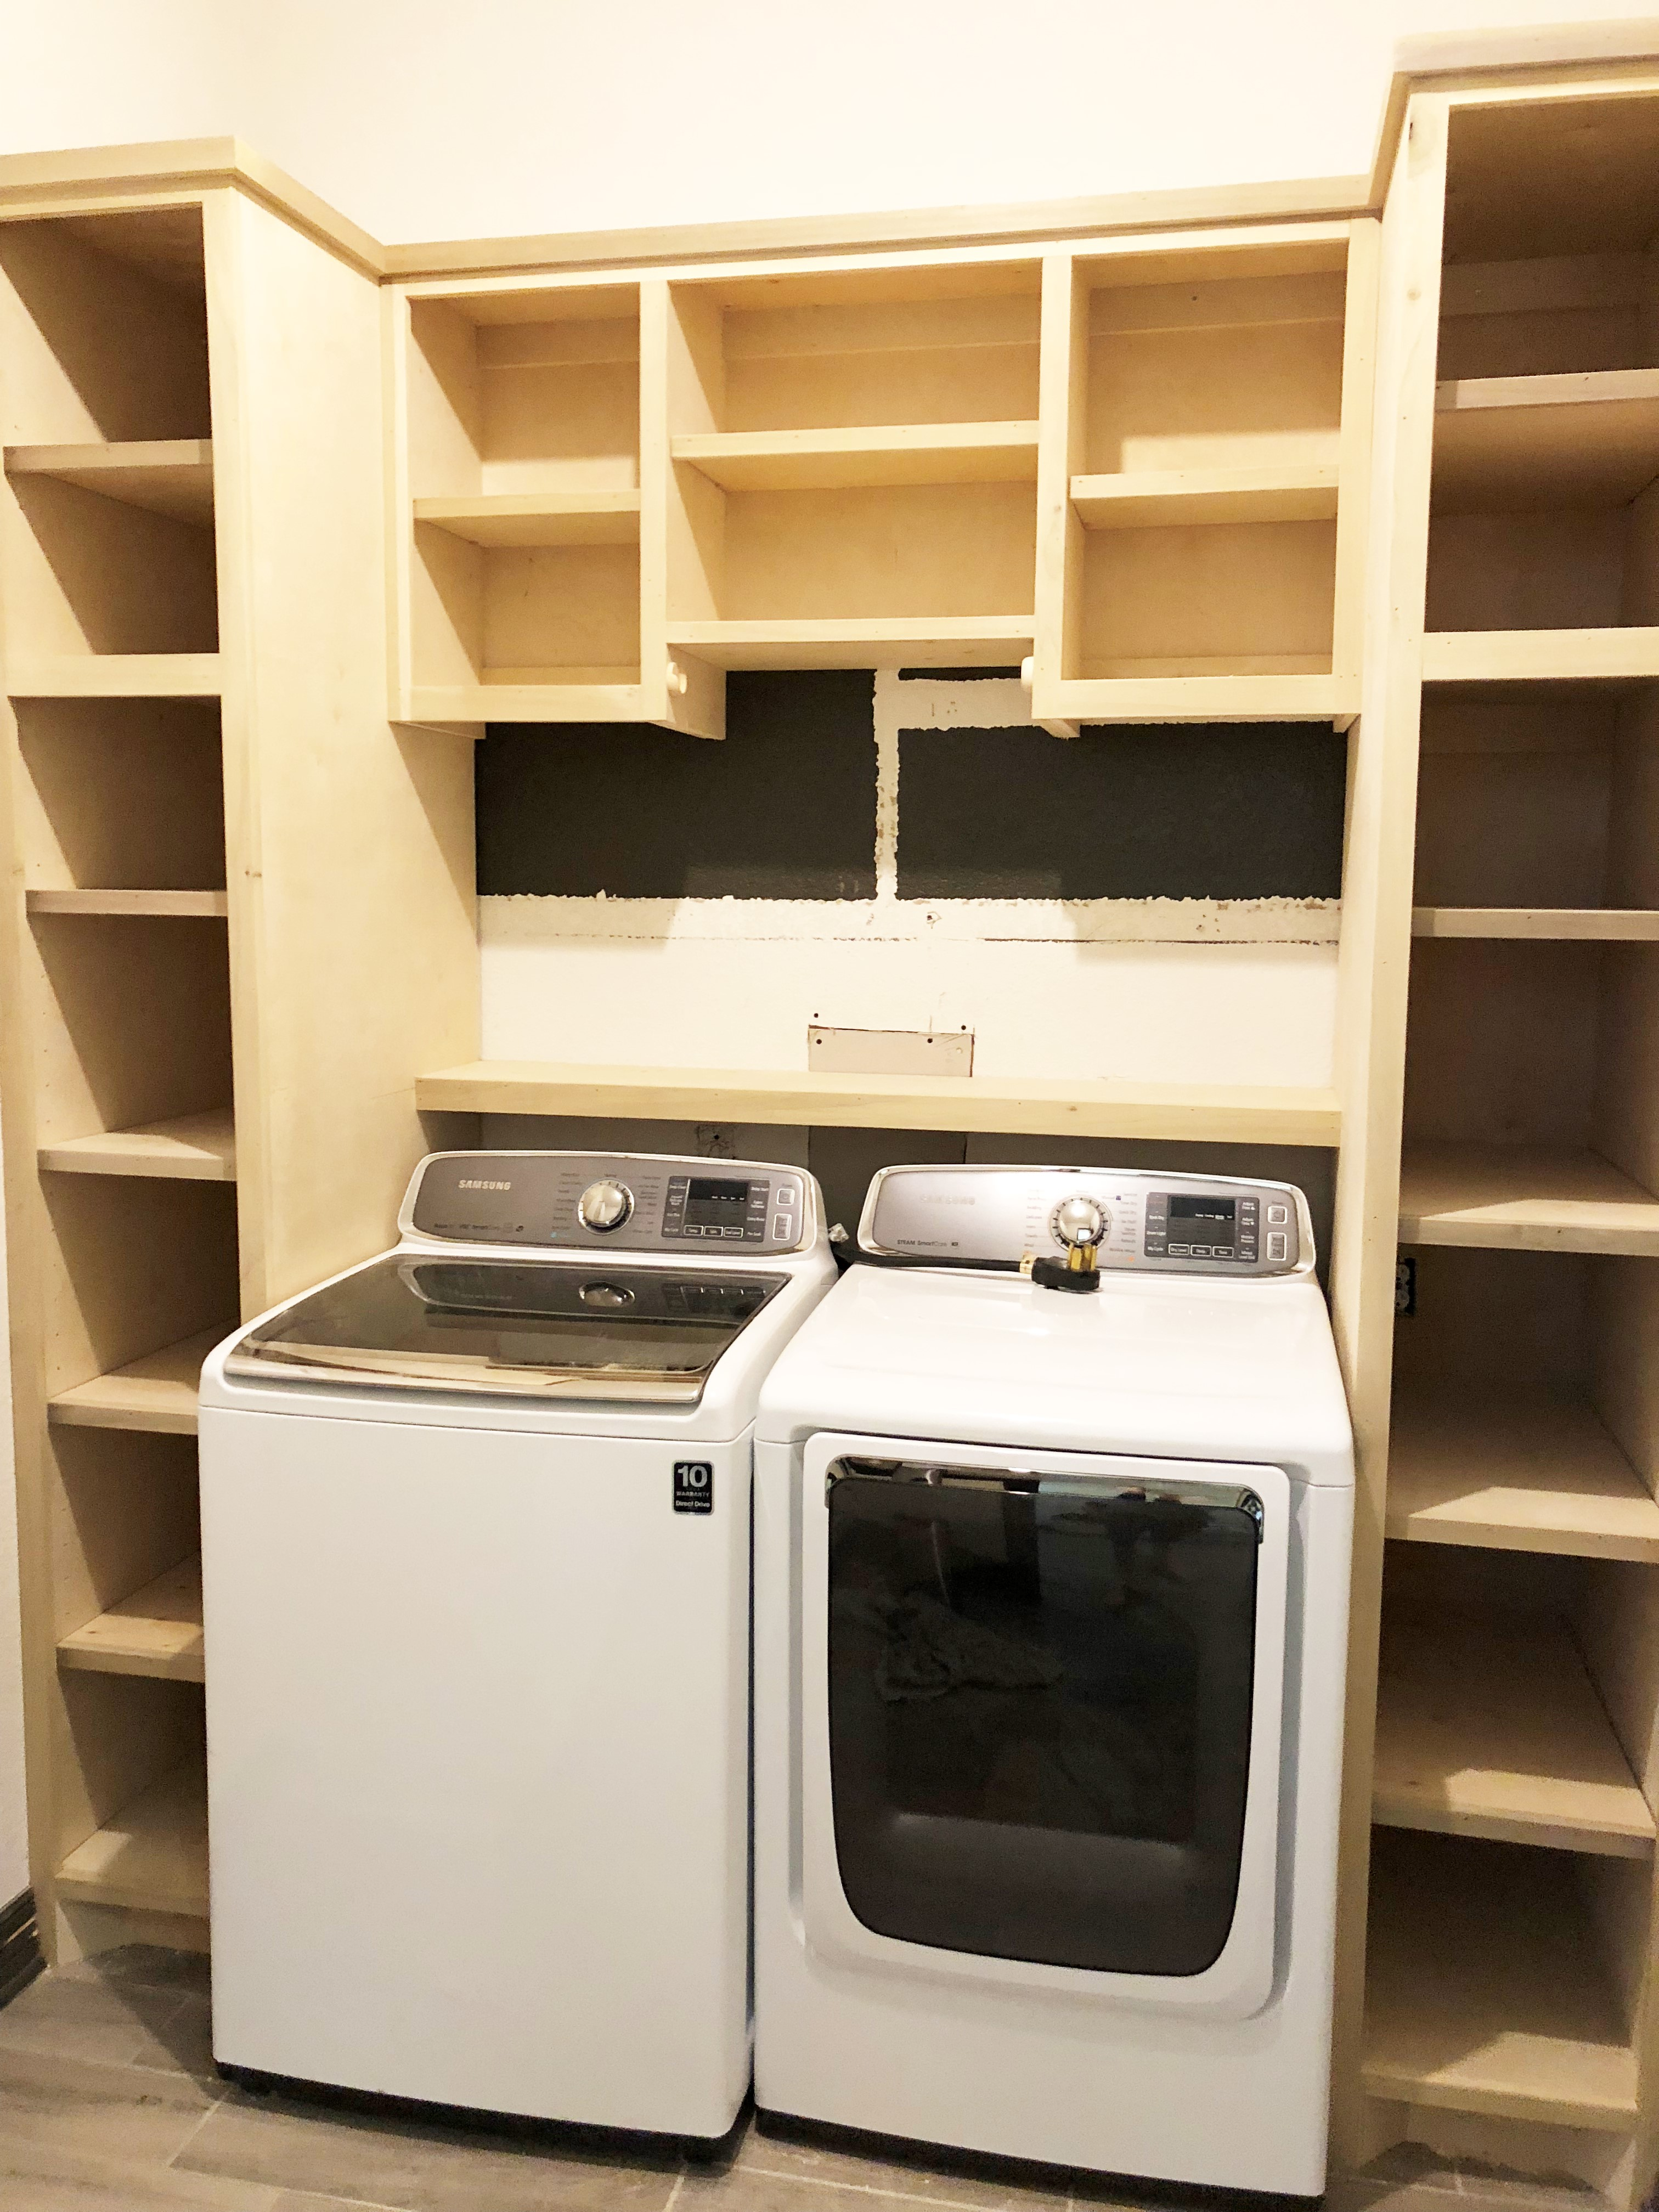 How To Design Built-In Cabinets For A Top Load Washer - Melissa